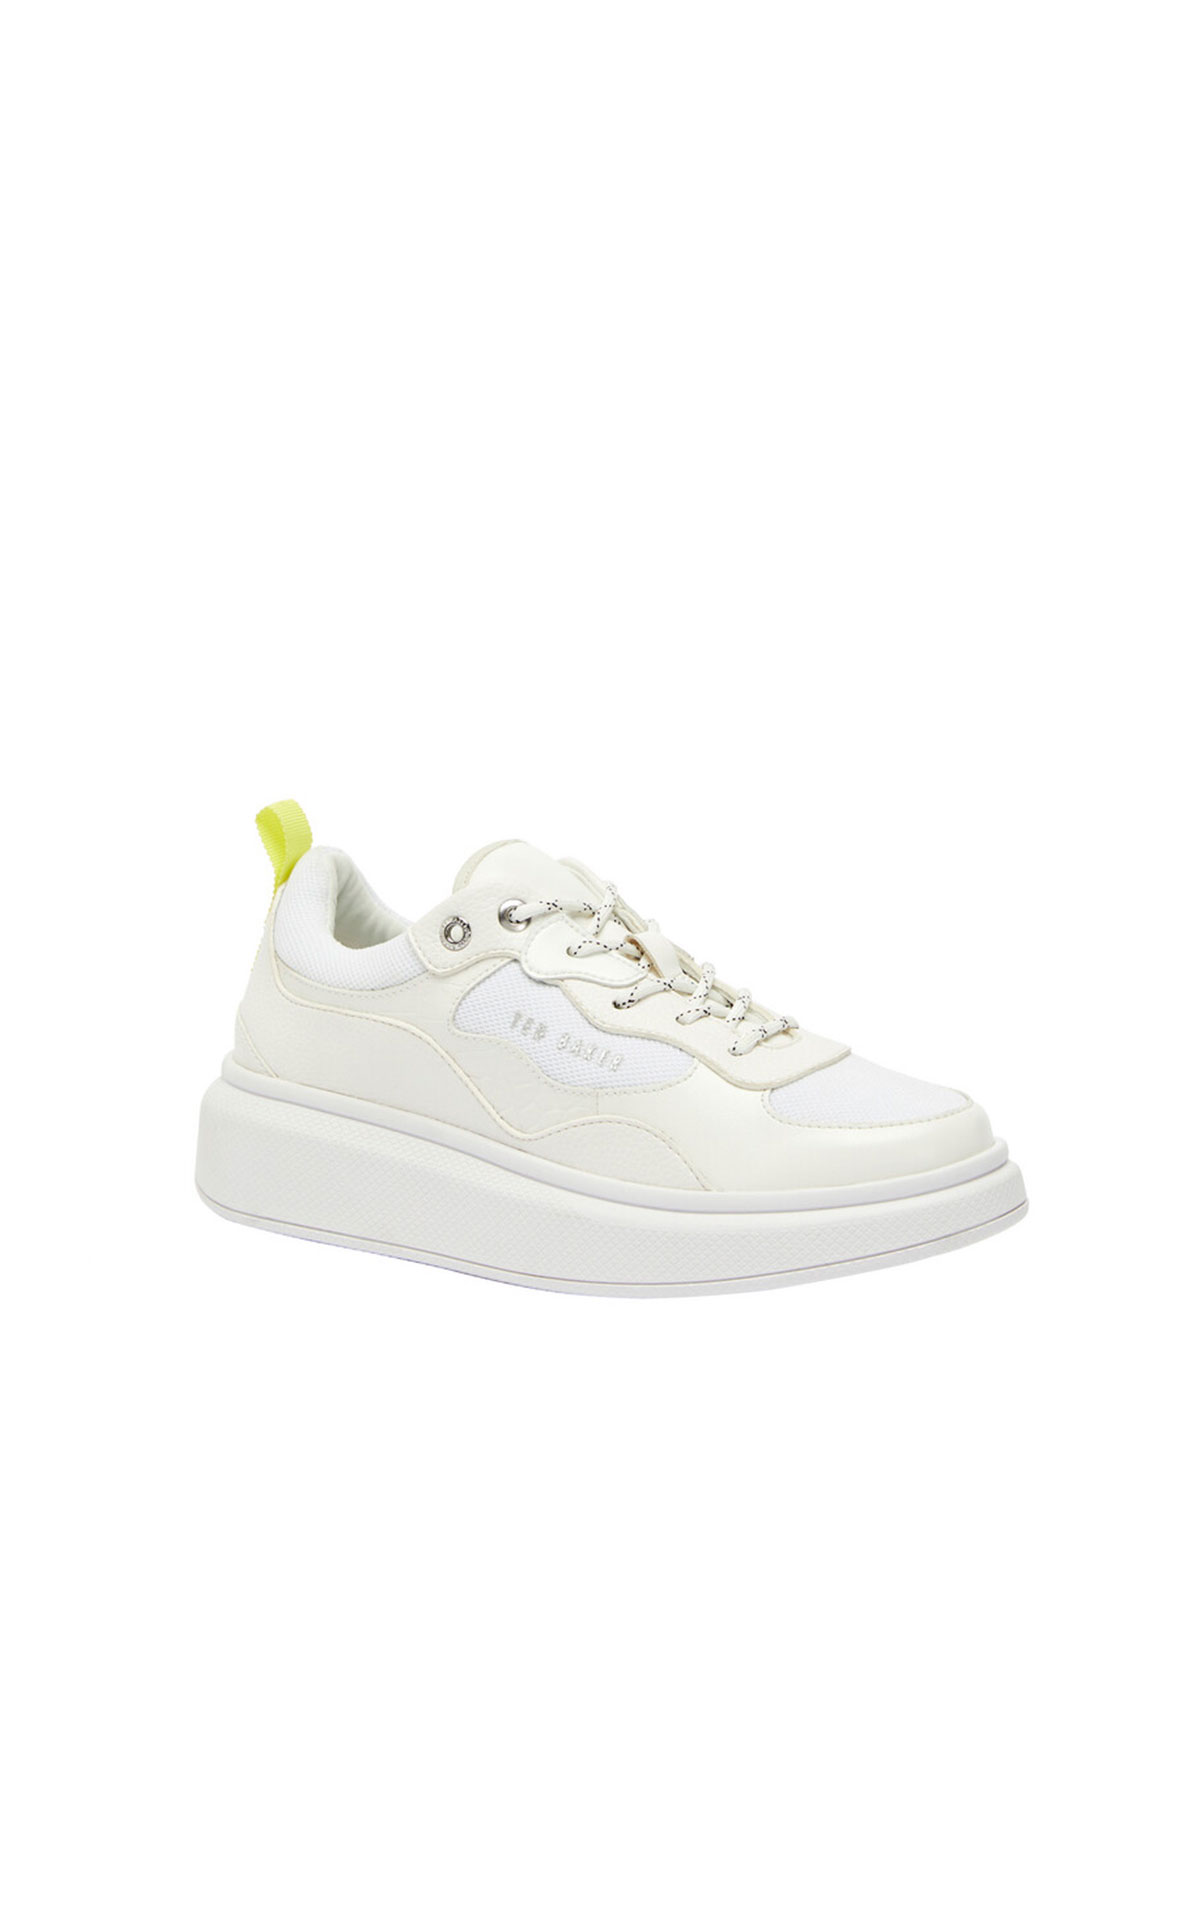 Ted Baker Arellia white platform sole trainer from Bicester Village